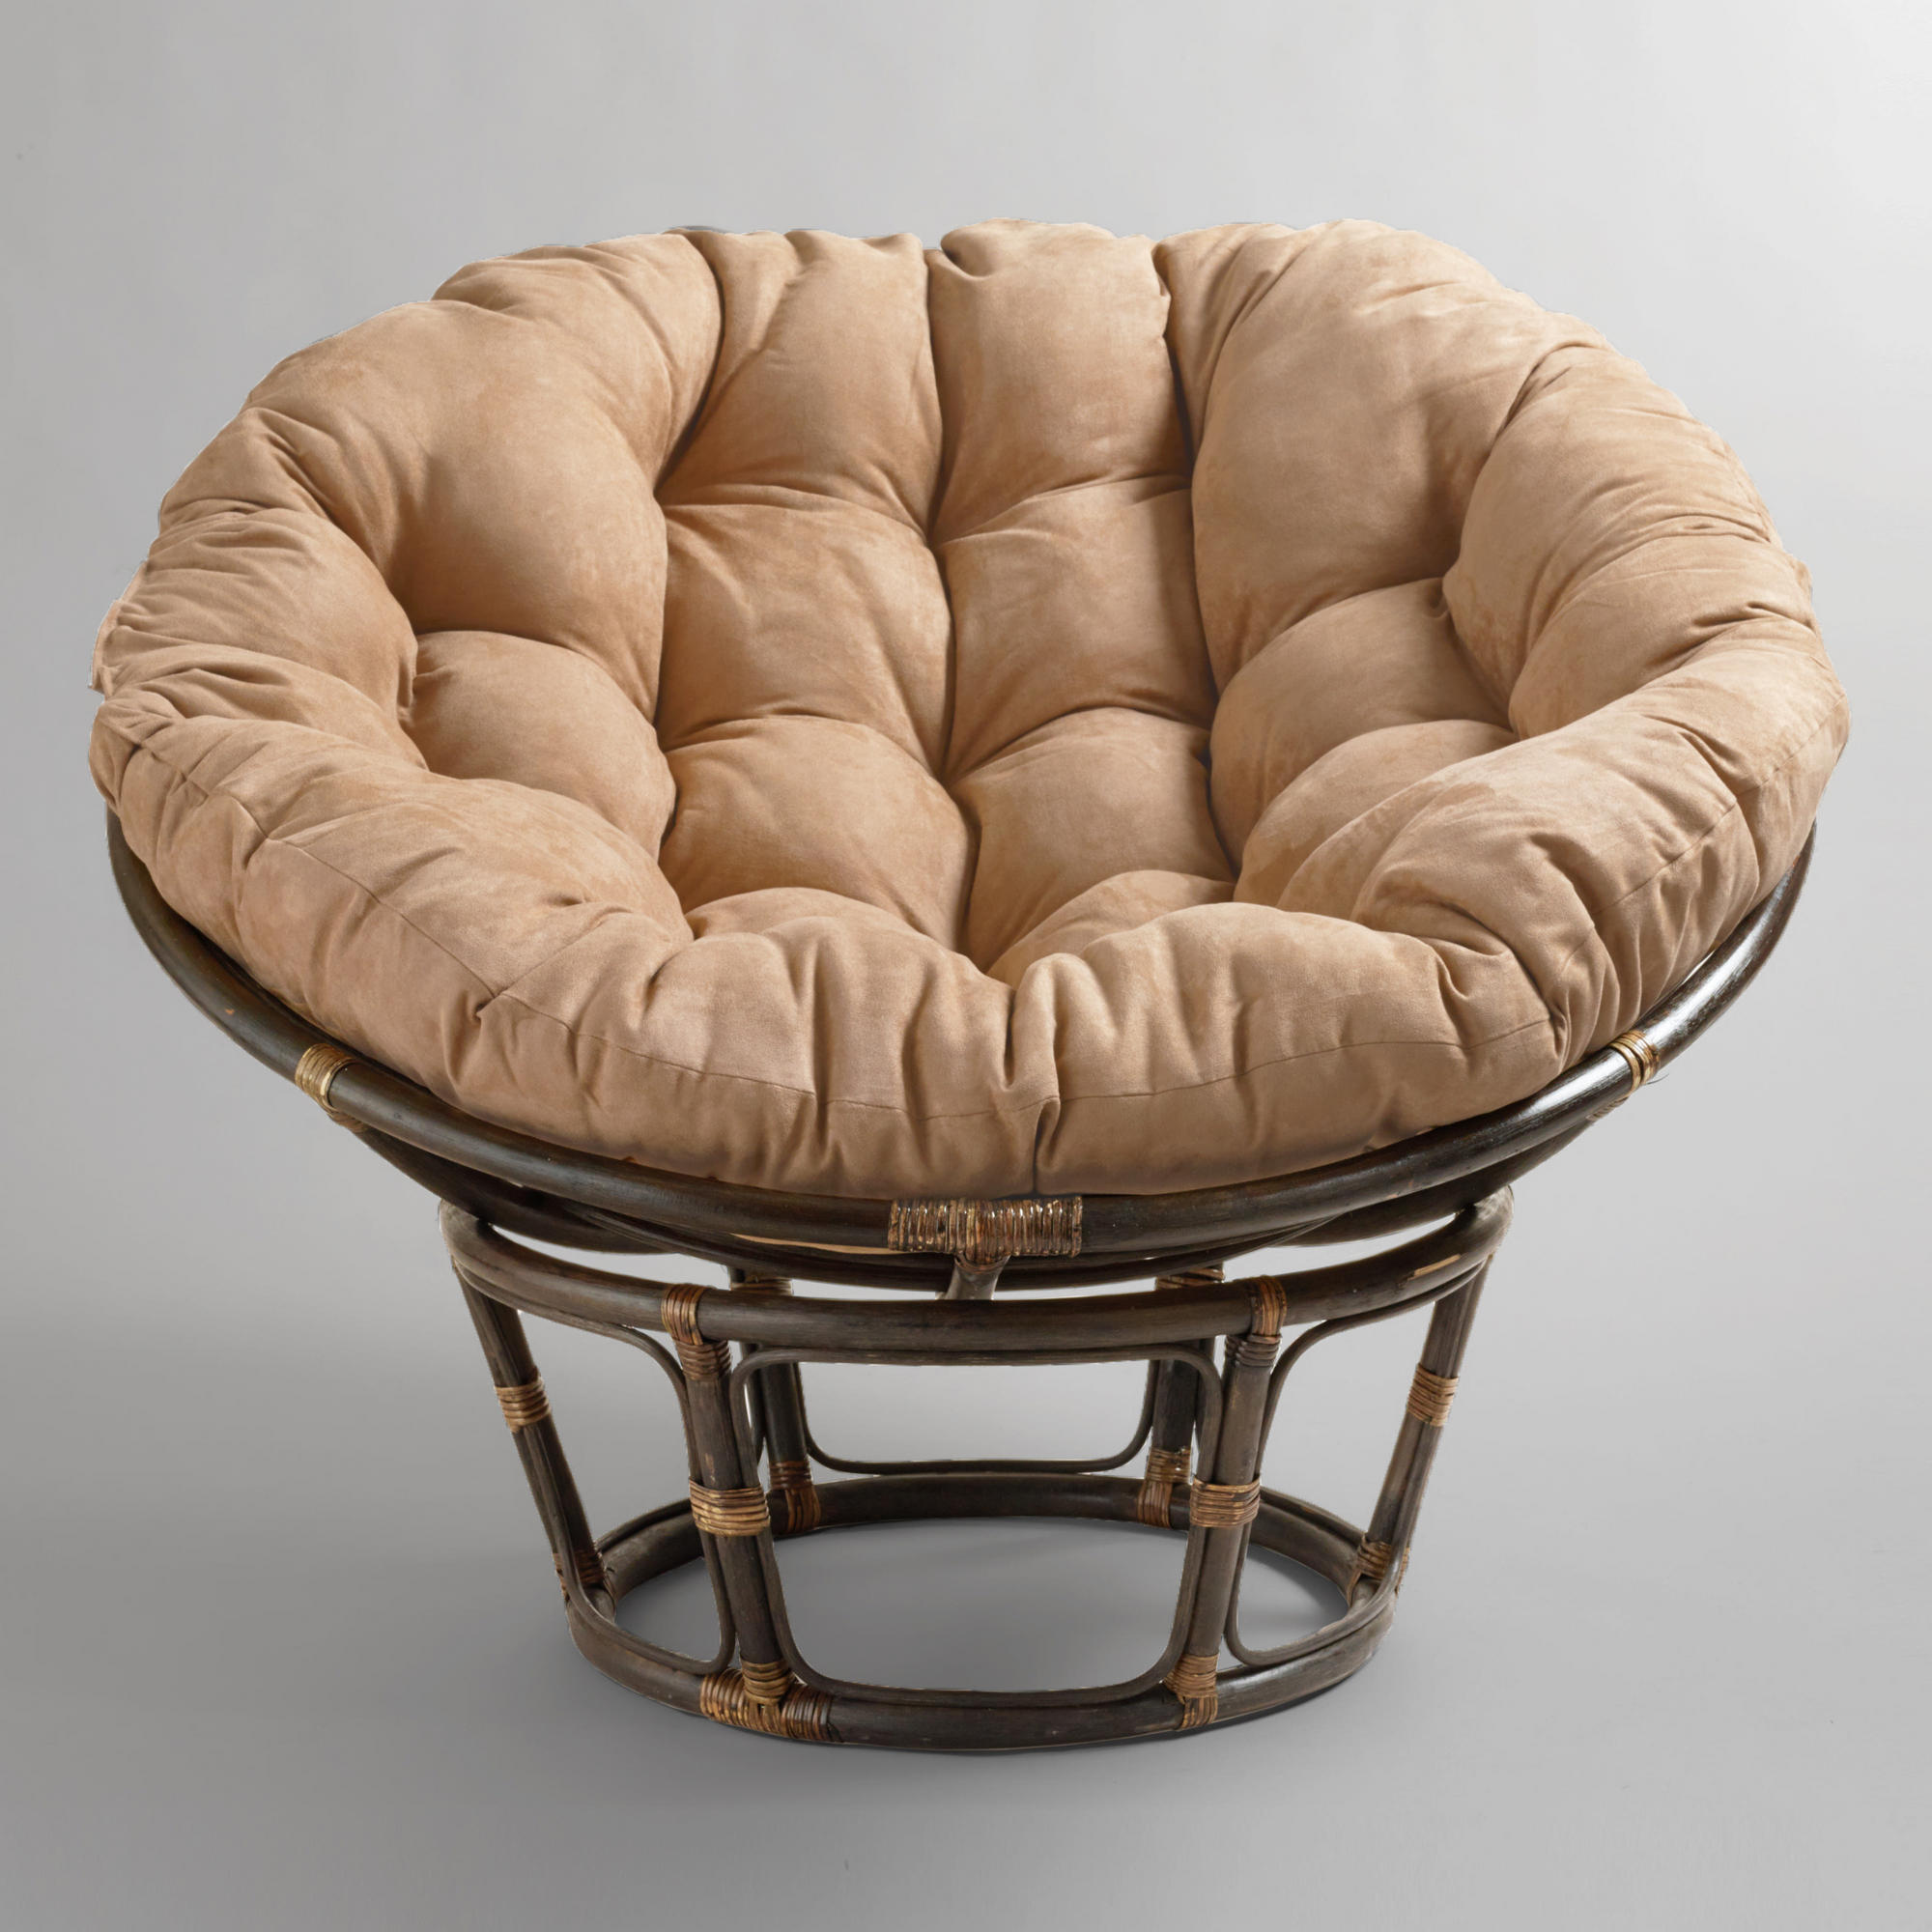 Furniture Khaki Microsuede Papasan Chair Cushion From Cost Plus World